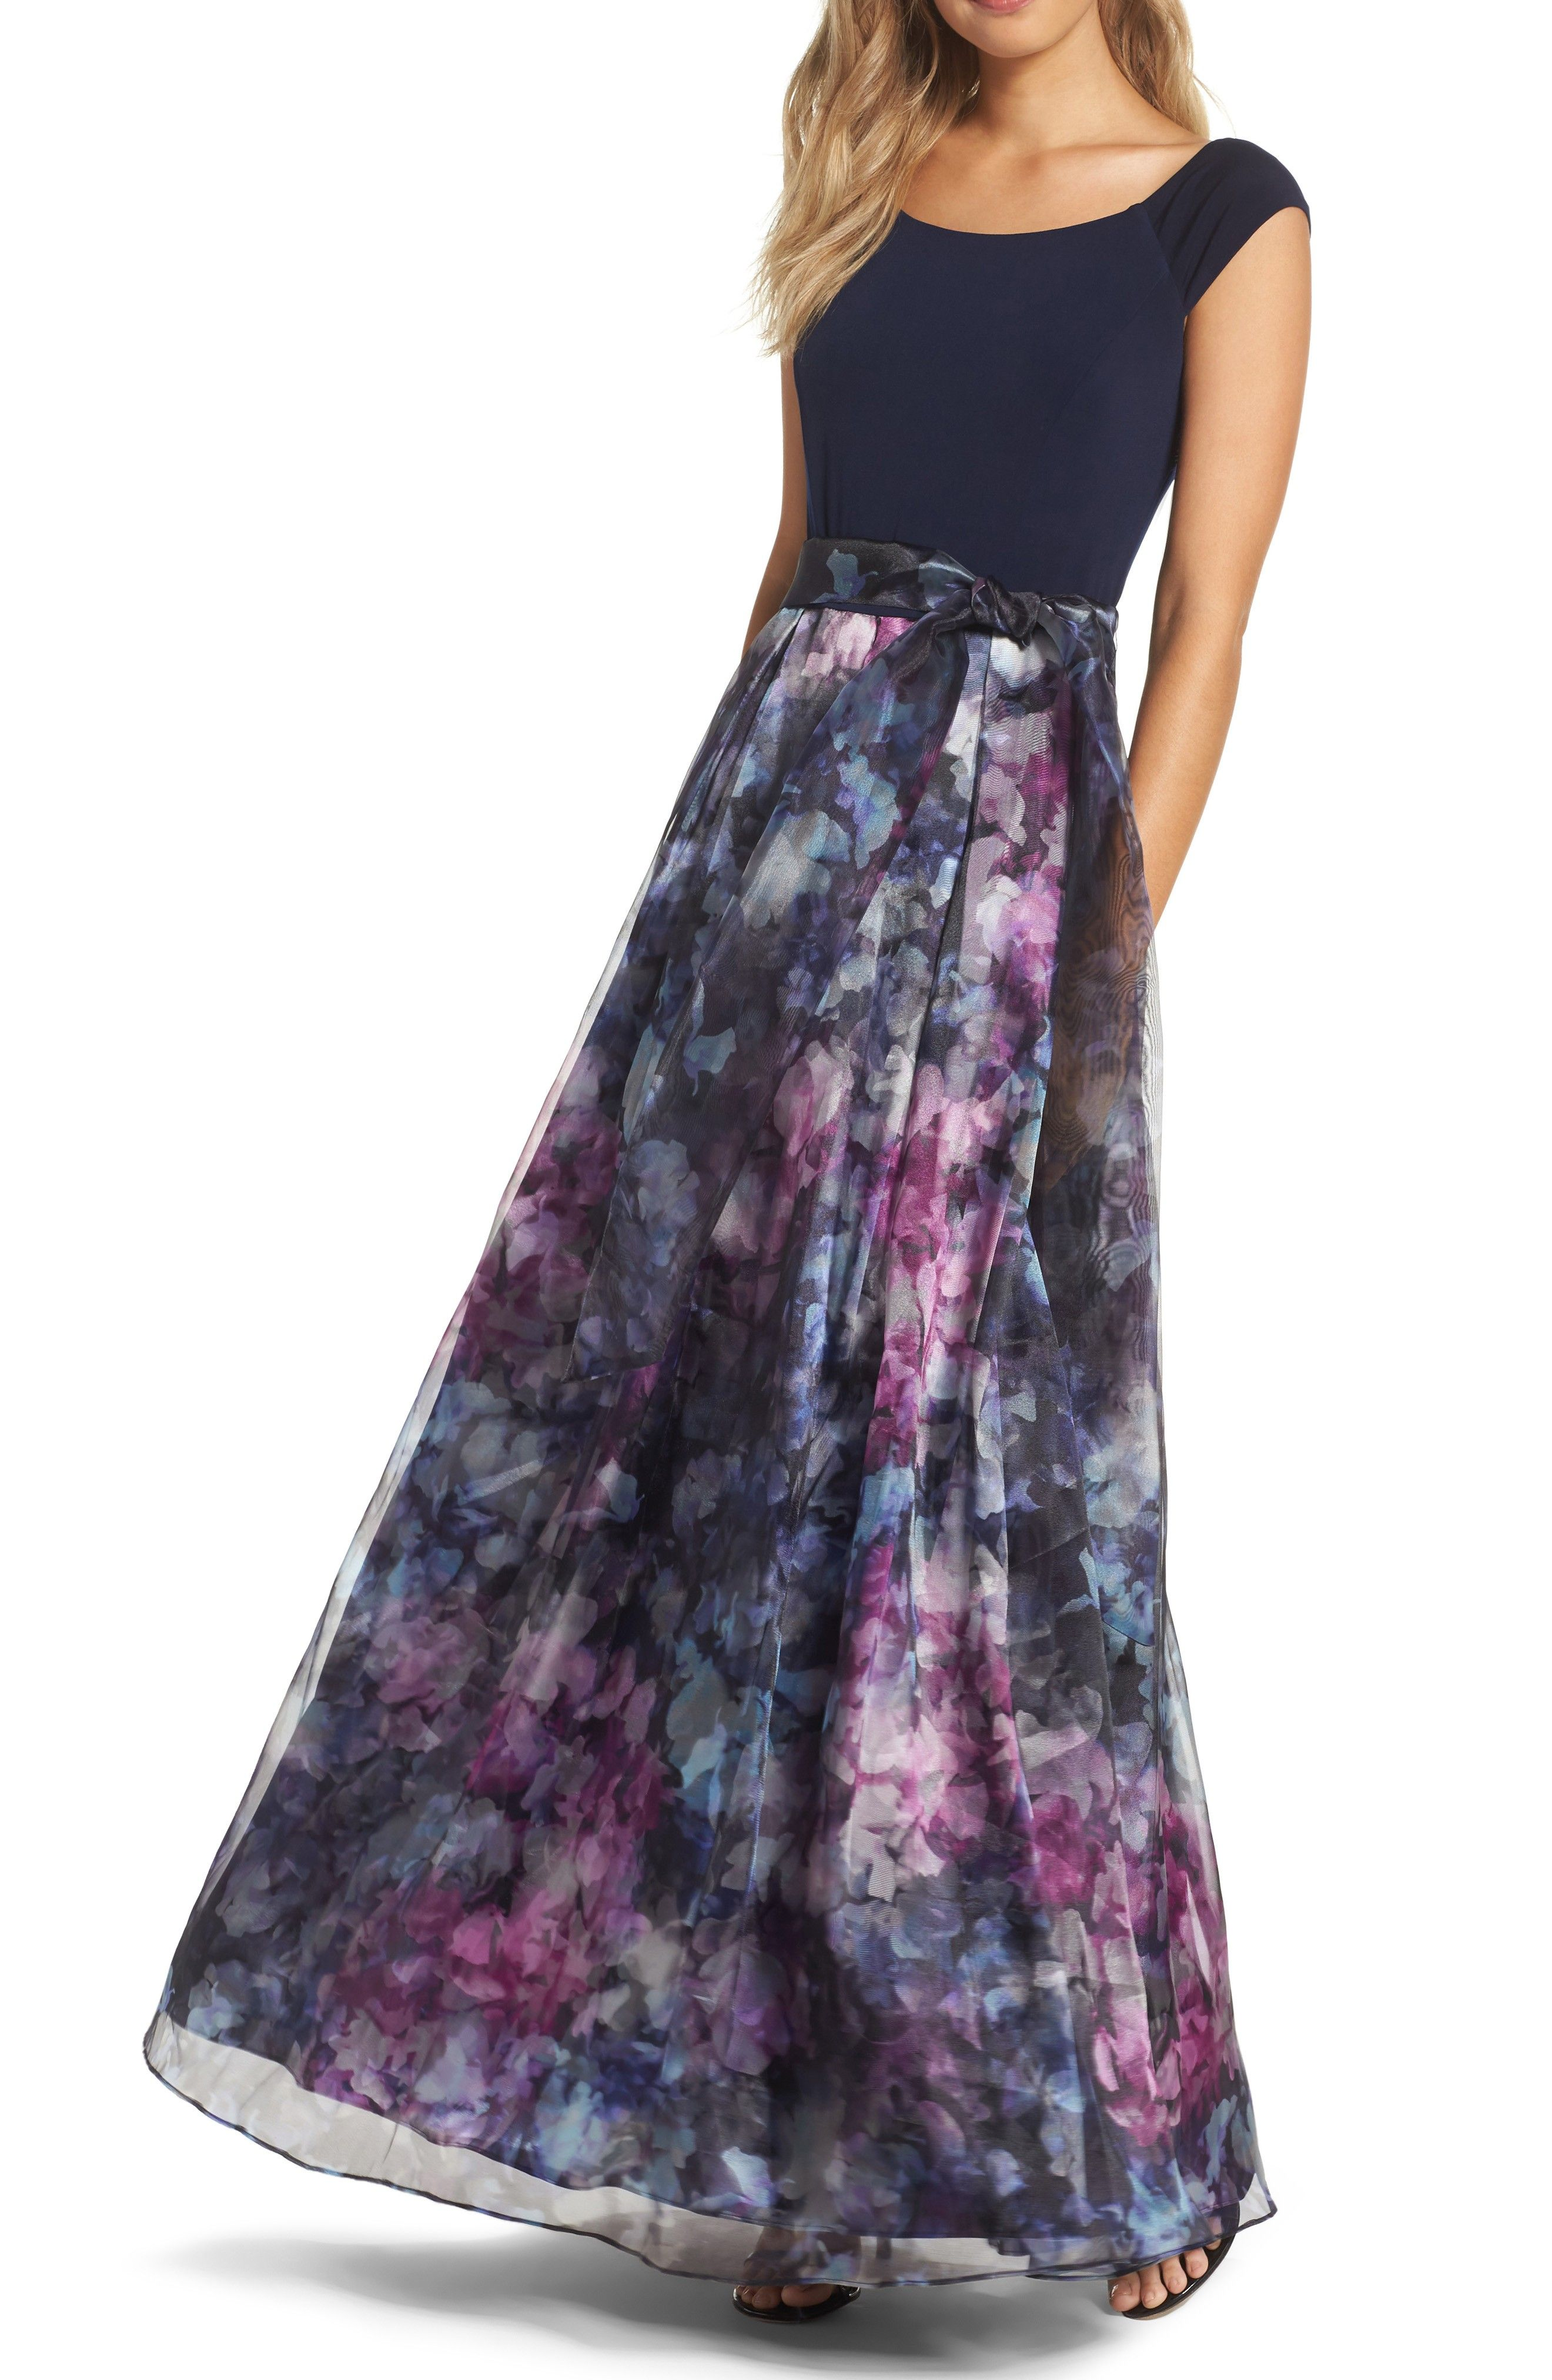 Dresses to wear to a beach wedding as a guest  Wedding Guest Dresses  Dresses  Pinterest  Ball gowns Dresses